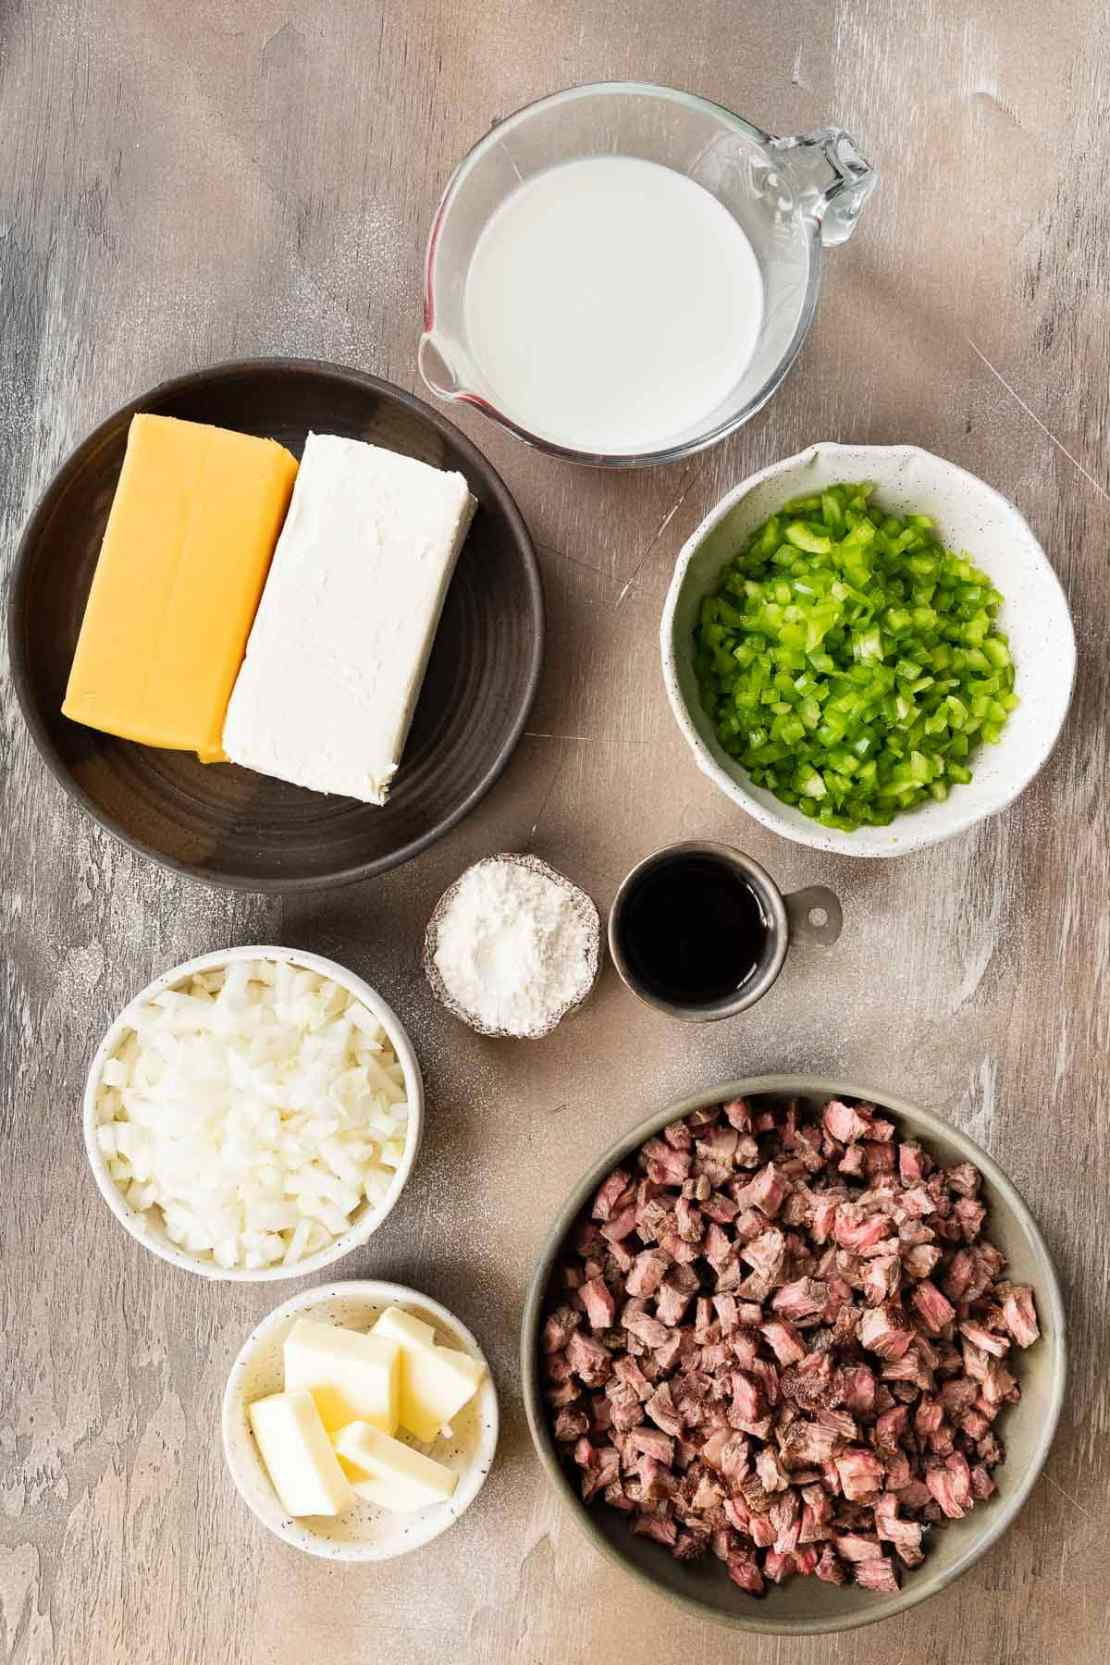 Ingredients for Philly Cheesesteak Dip in prep bowls